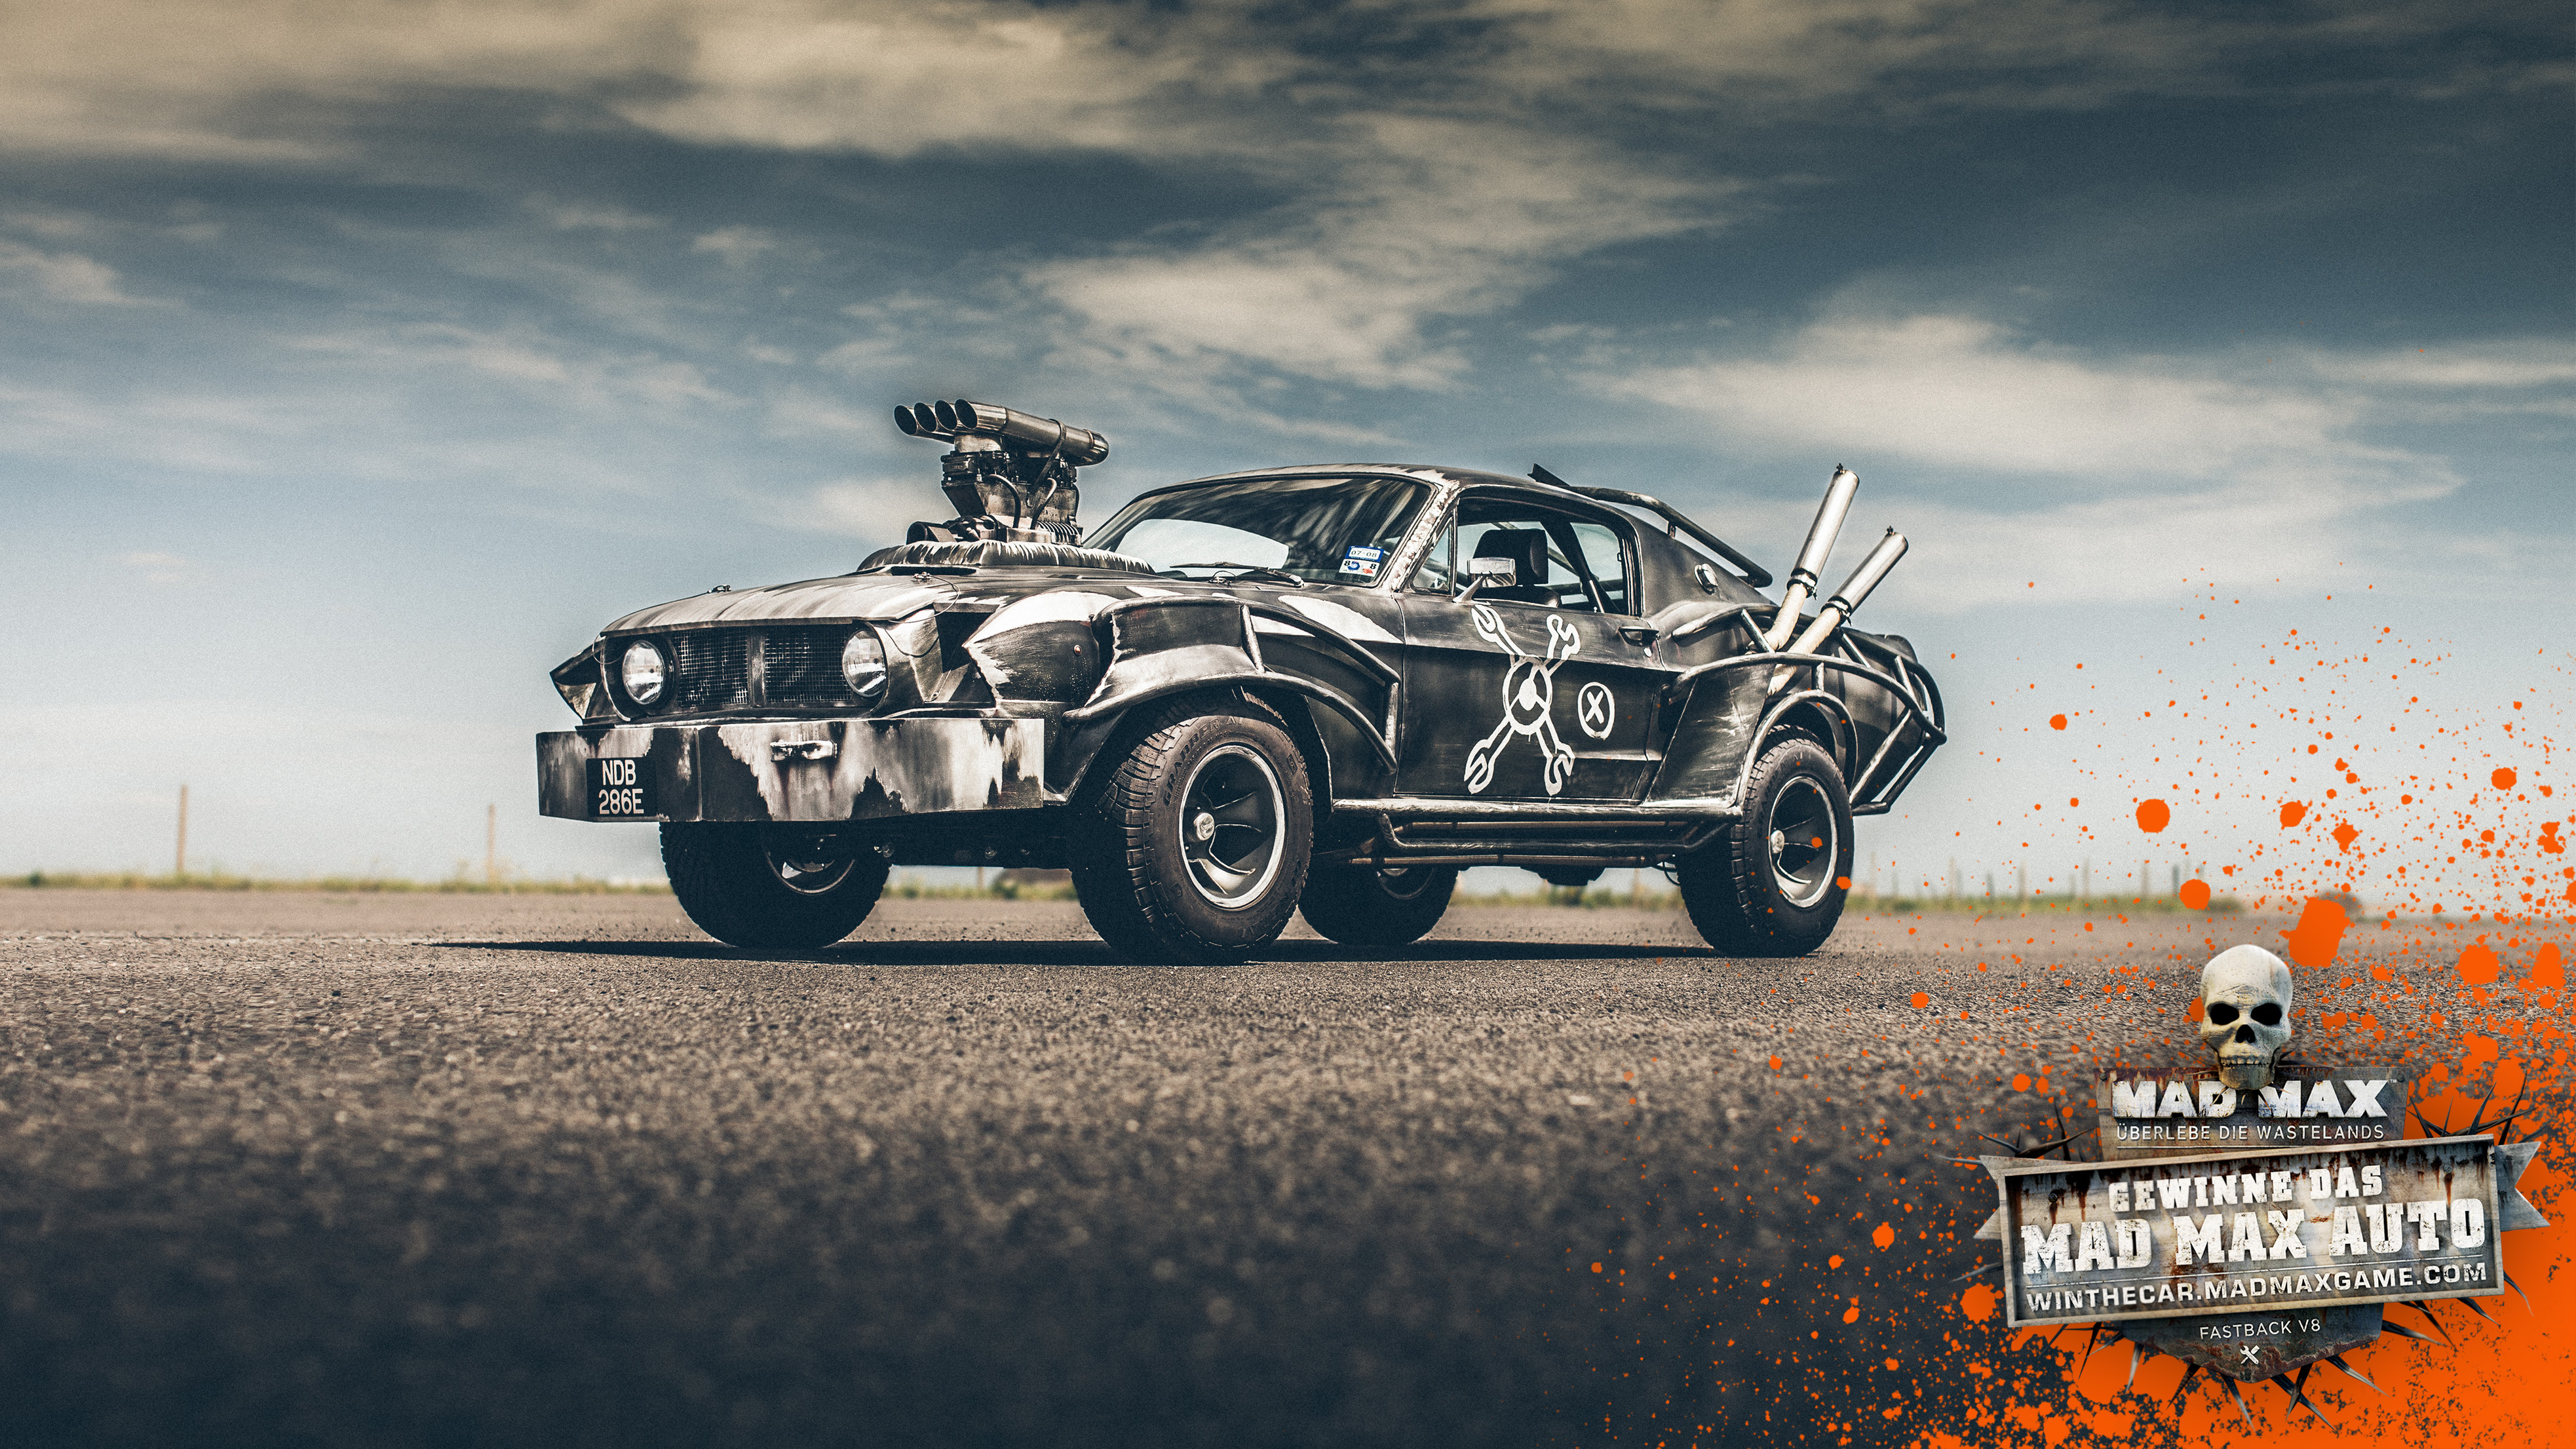 Win the official mad max magnum opus mustang with warner bros